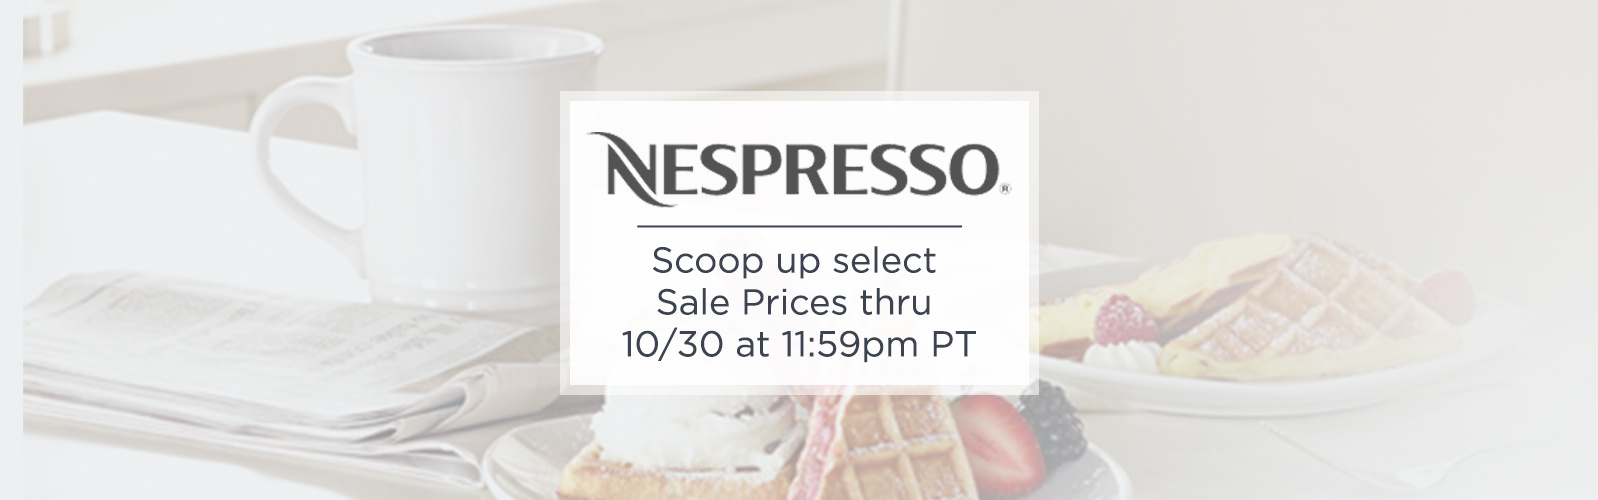 Nespresso - Scoop up select Sale Prices thru 10/30 at 11:59pm PT